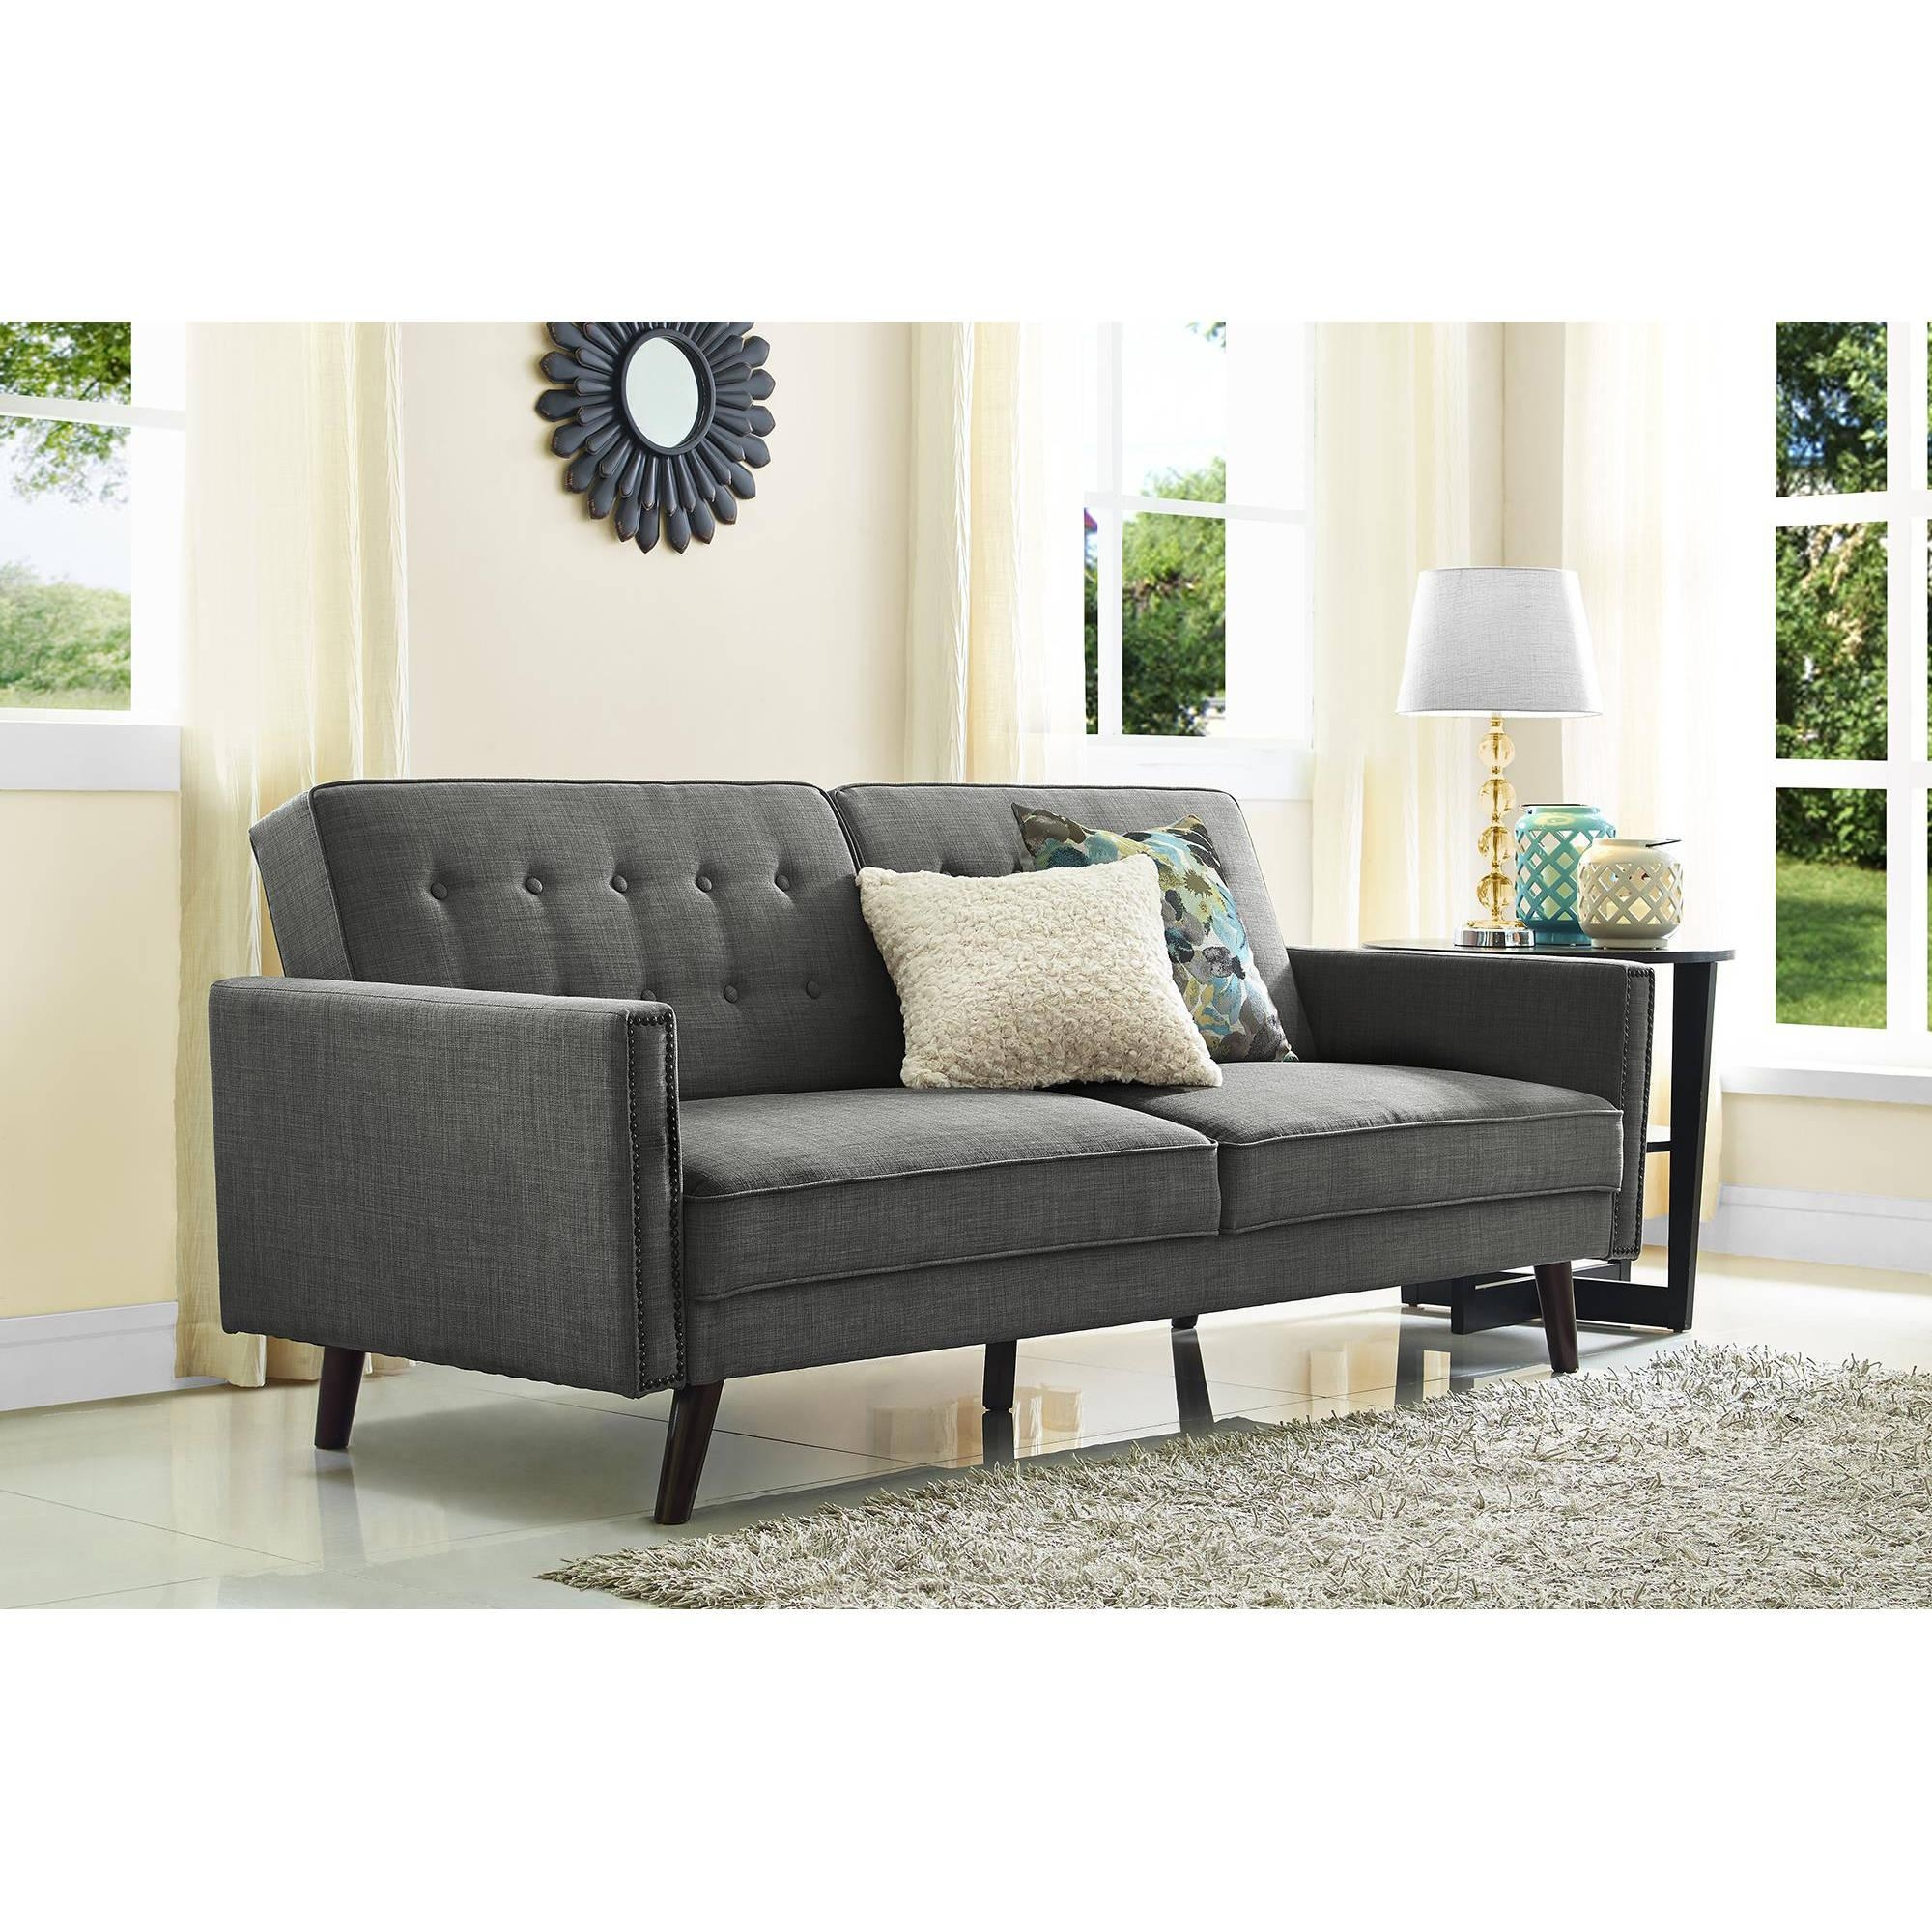 Furniture: Leather Futon Walmart | Sofa Bed Target | Futon Couches In Target Couch Beds (View 3 of 20)